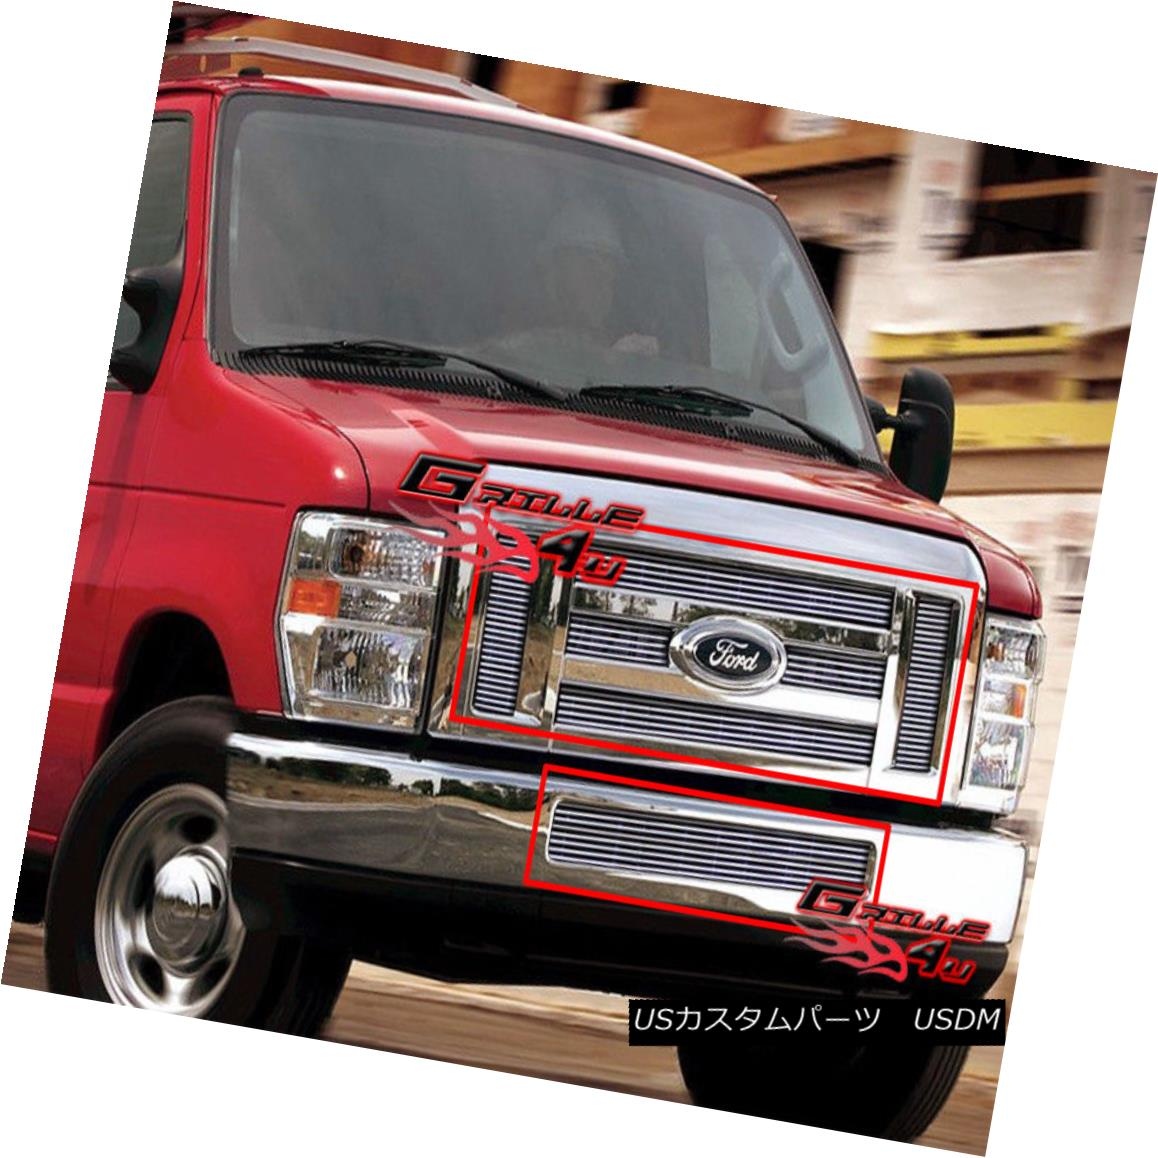 グリル For 08-2014 Ford Econoline Van/E-Series Billet Grille Combo 08-2014 Ford Econoline Van / Eシリーズビレットグリルコンボ用